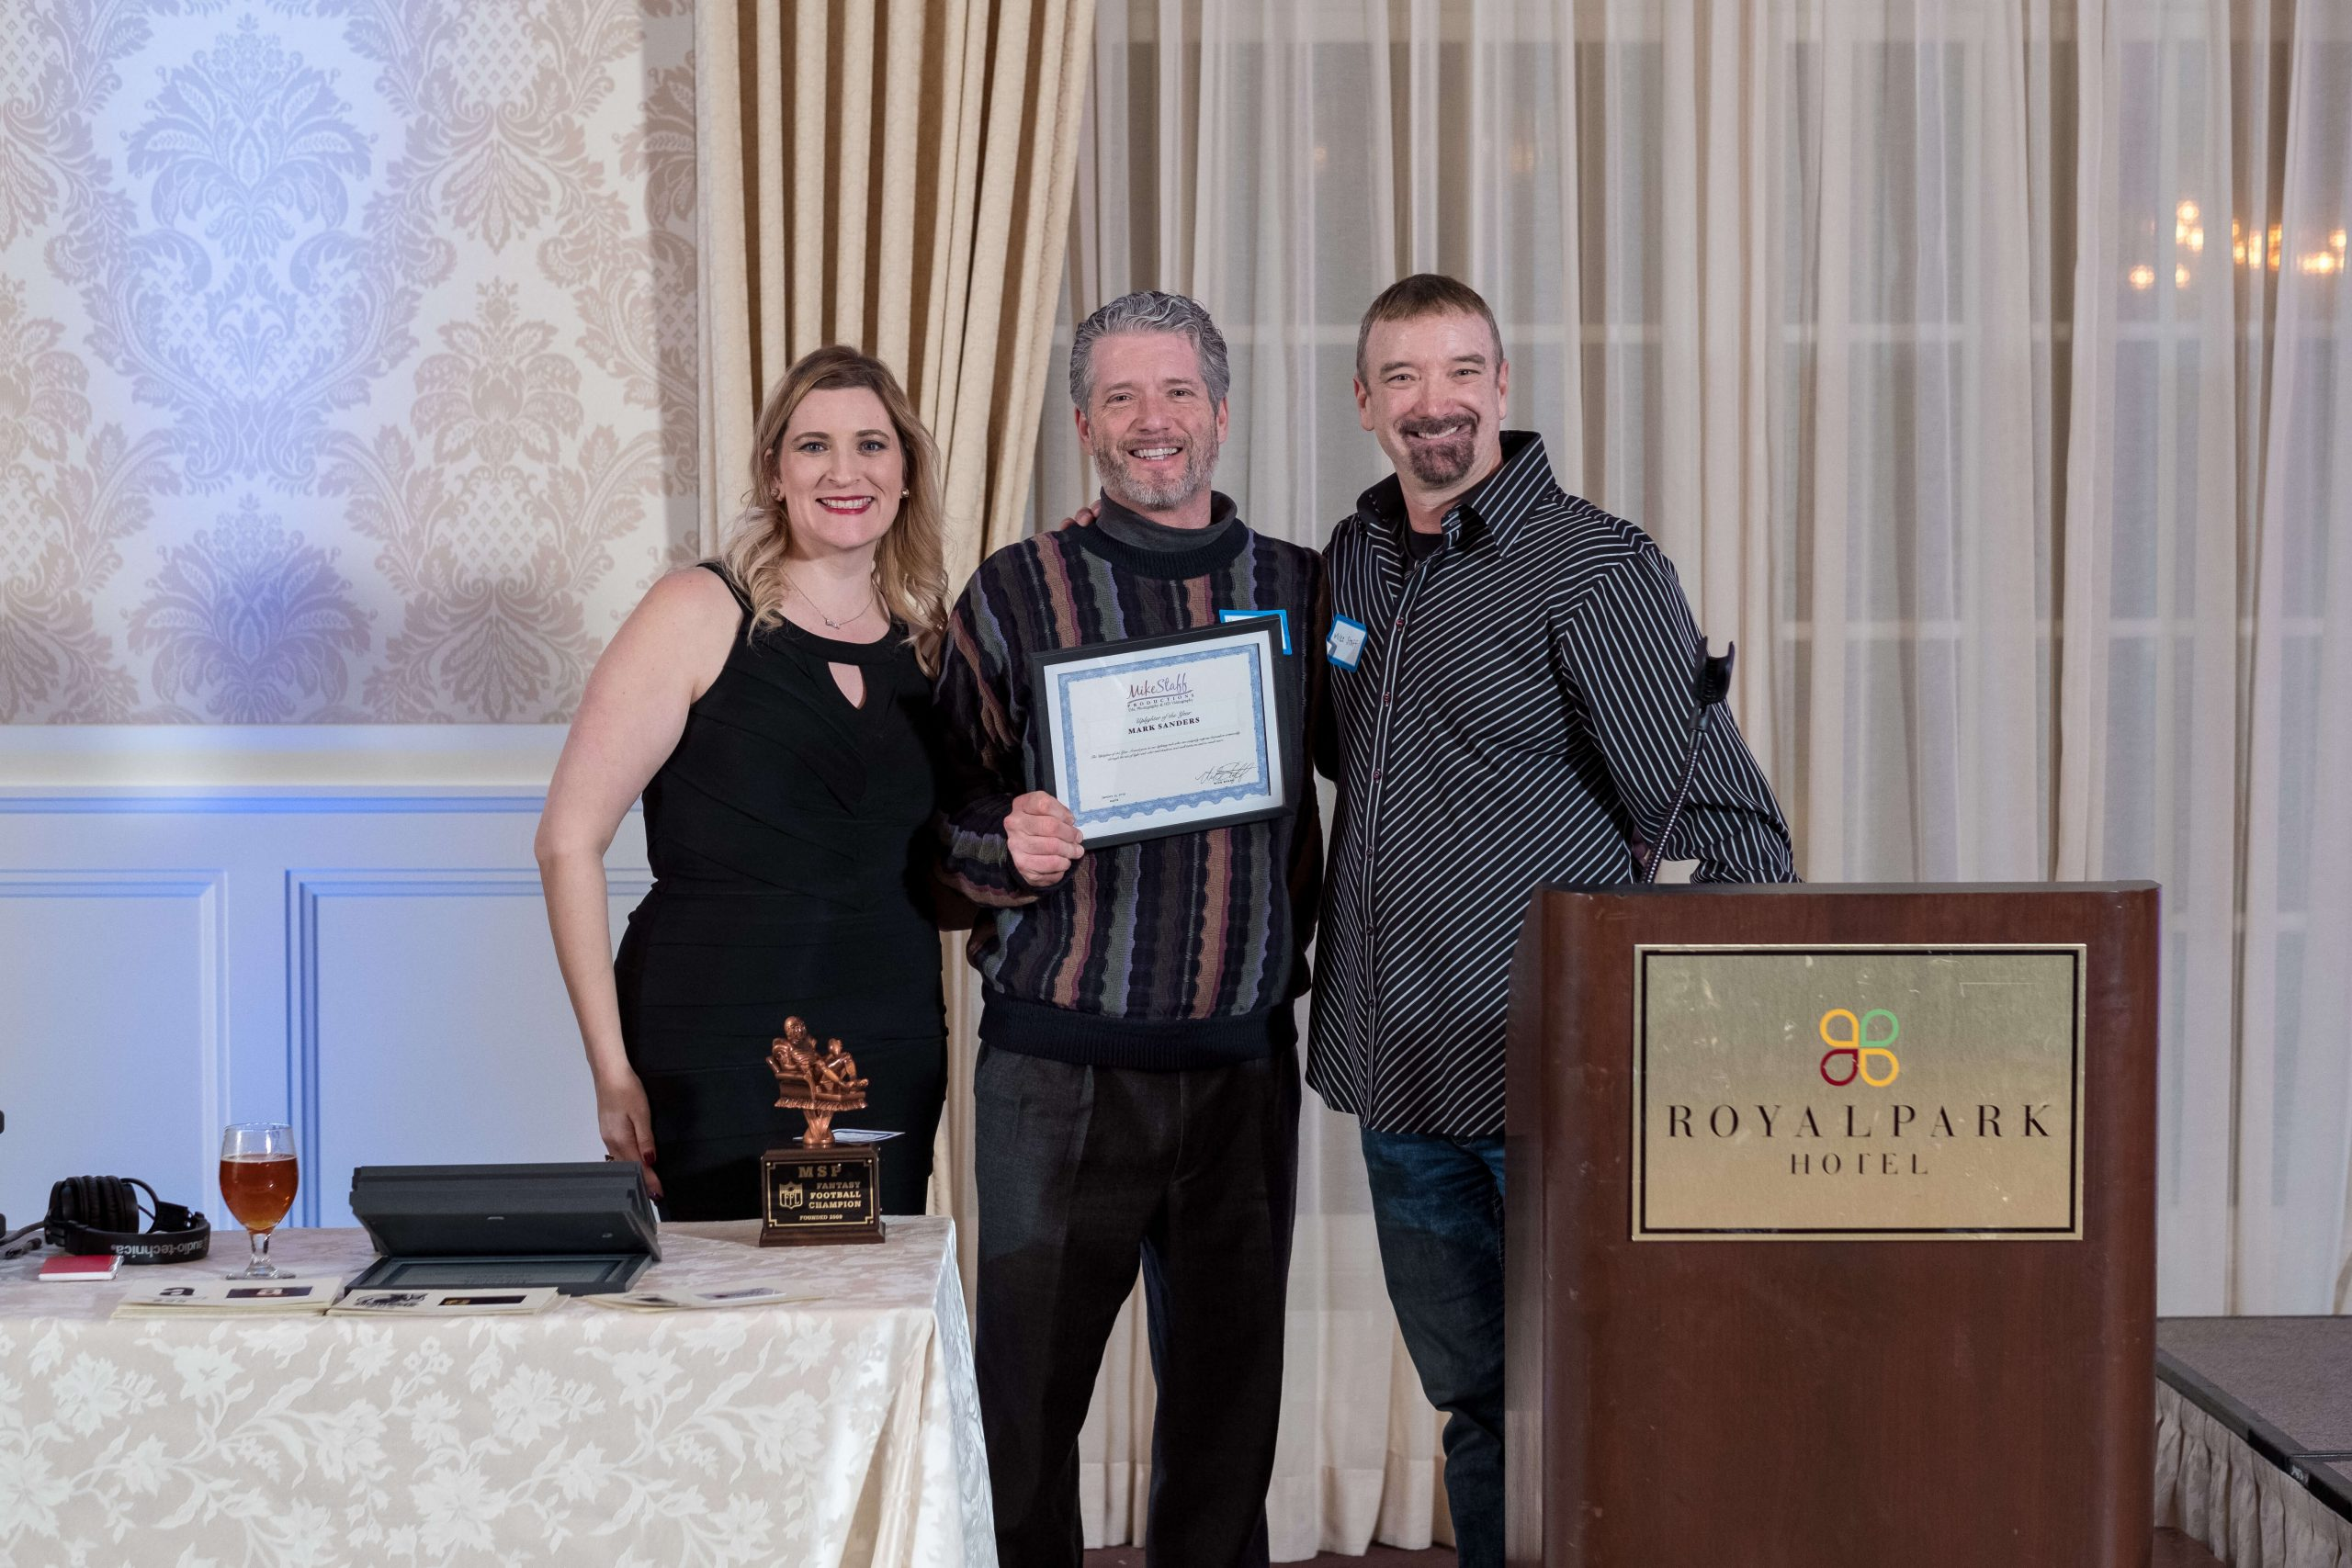 Mike Staff Productions uplighter of the year